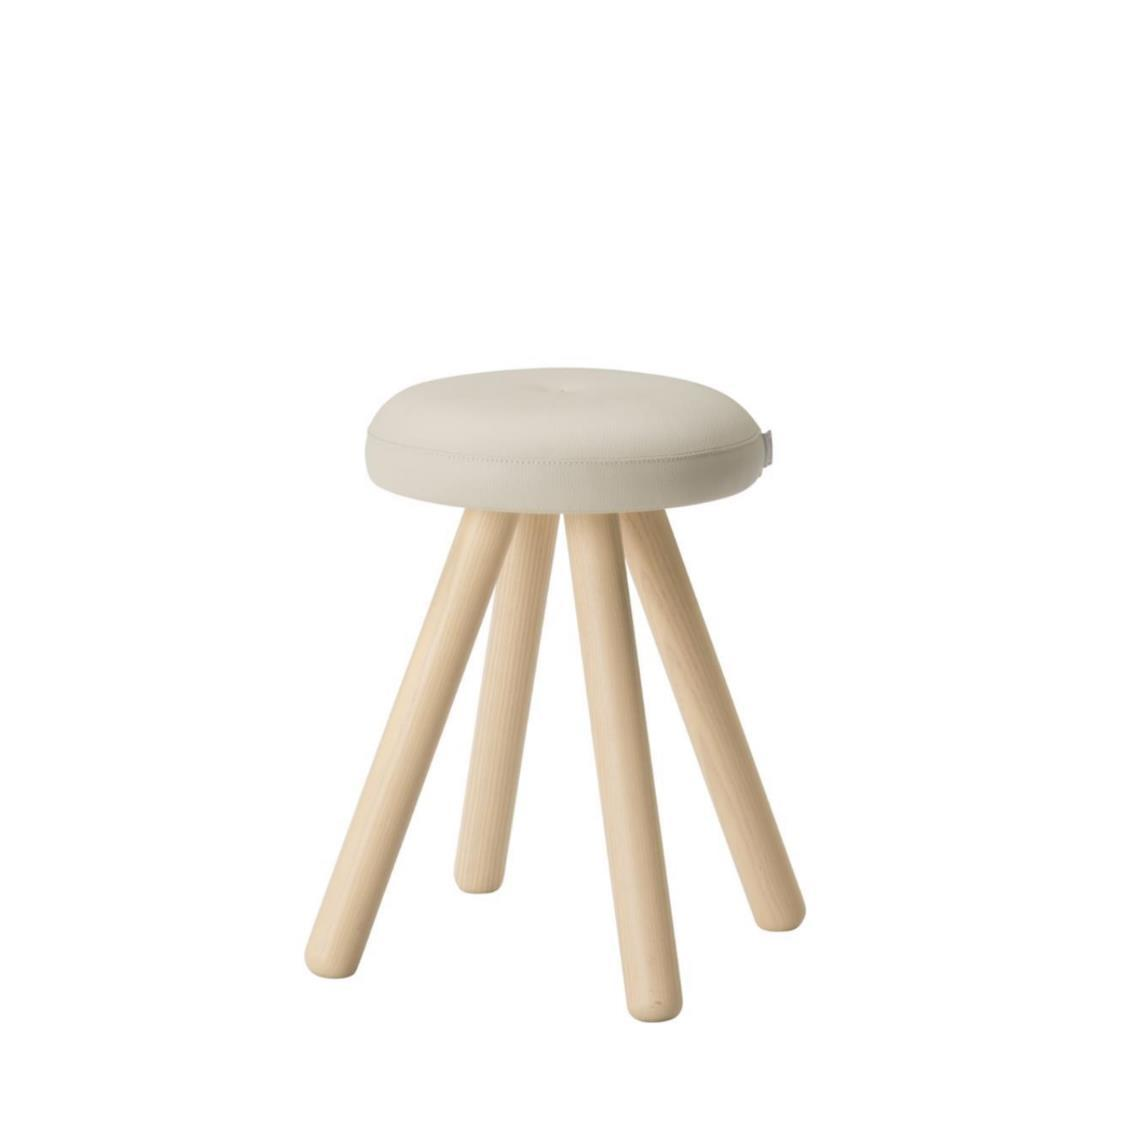 Miel Gallery Wooden Round Stool CCLBG